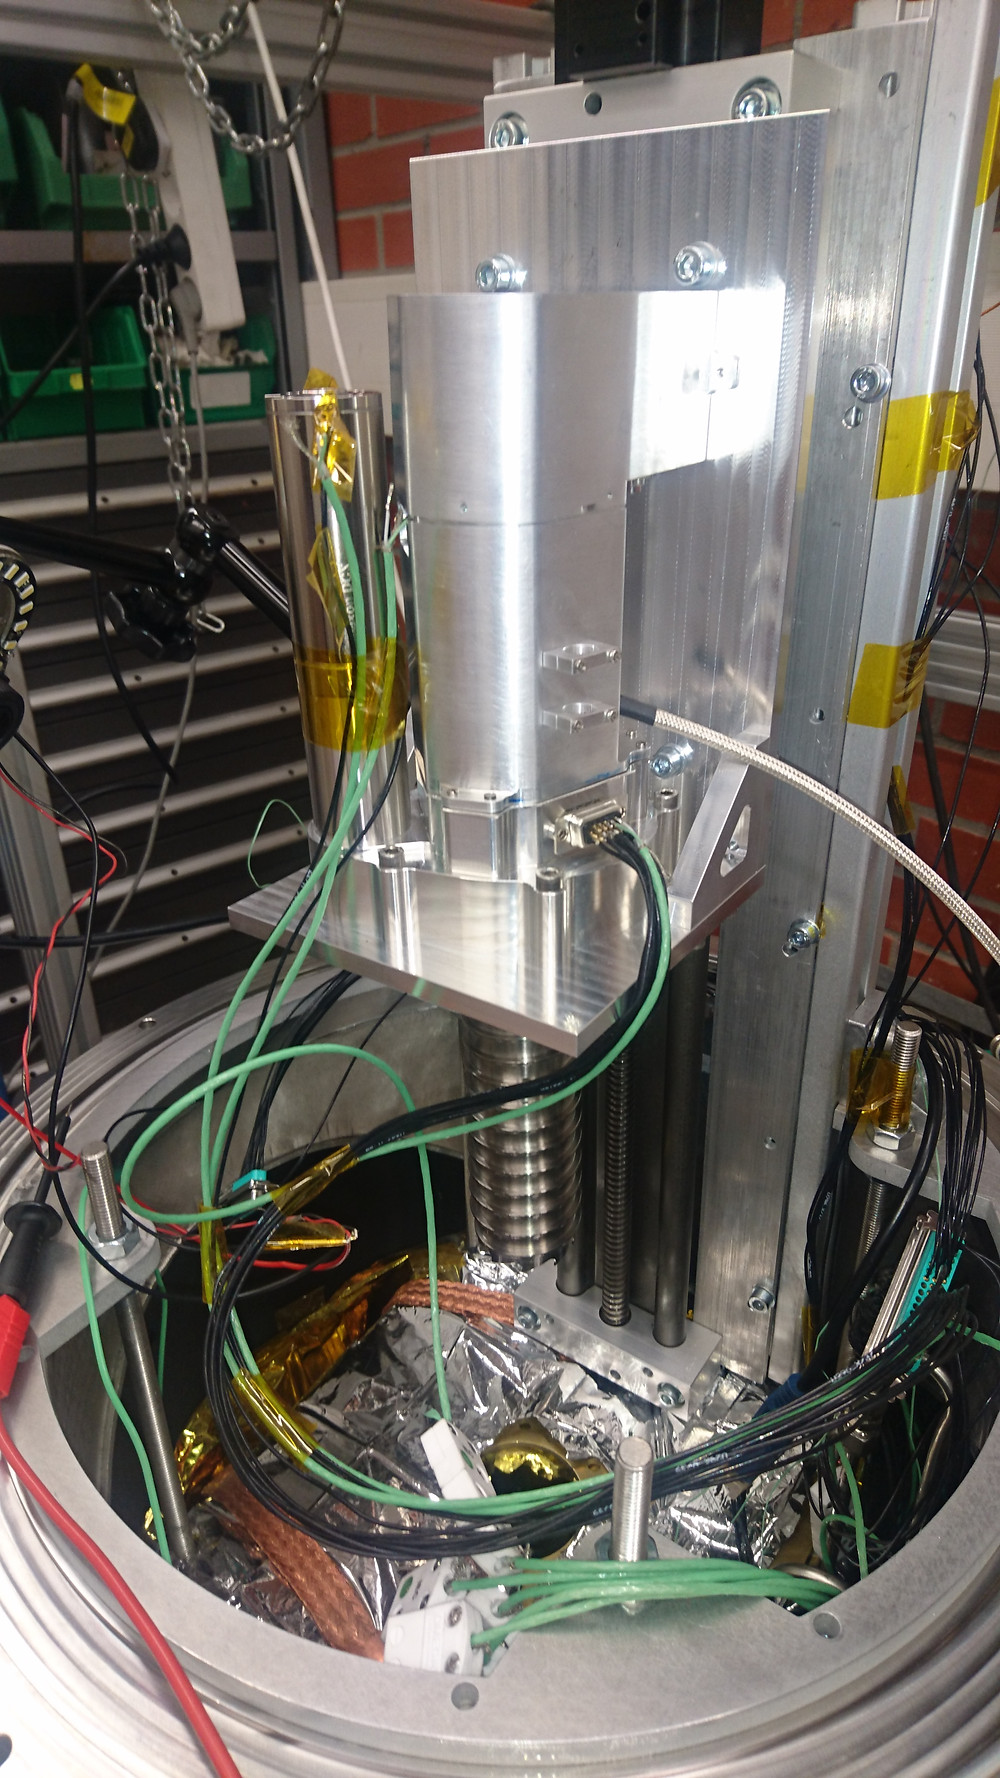 The integrated instrument in the thermal vacuum chamber. The drill is mounted on a linear guide to allow the drilling, heating and gas extraction in simulated lunar conditions.